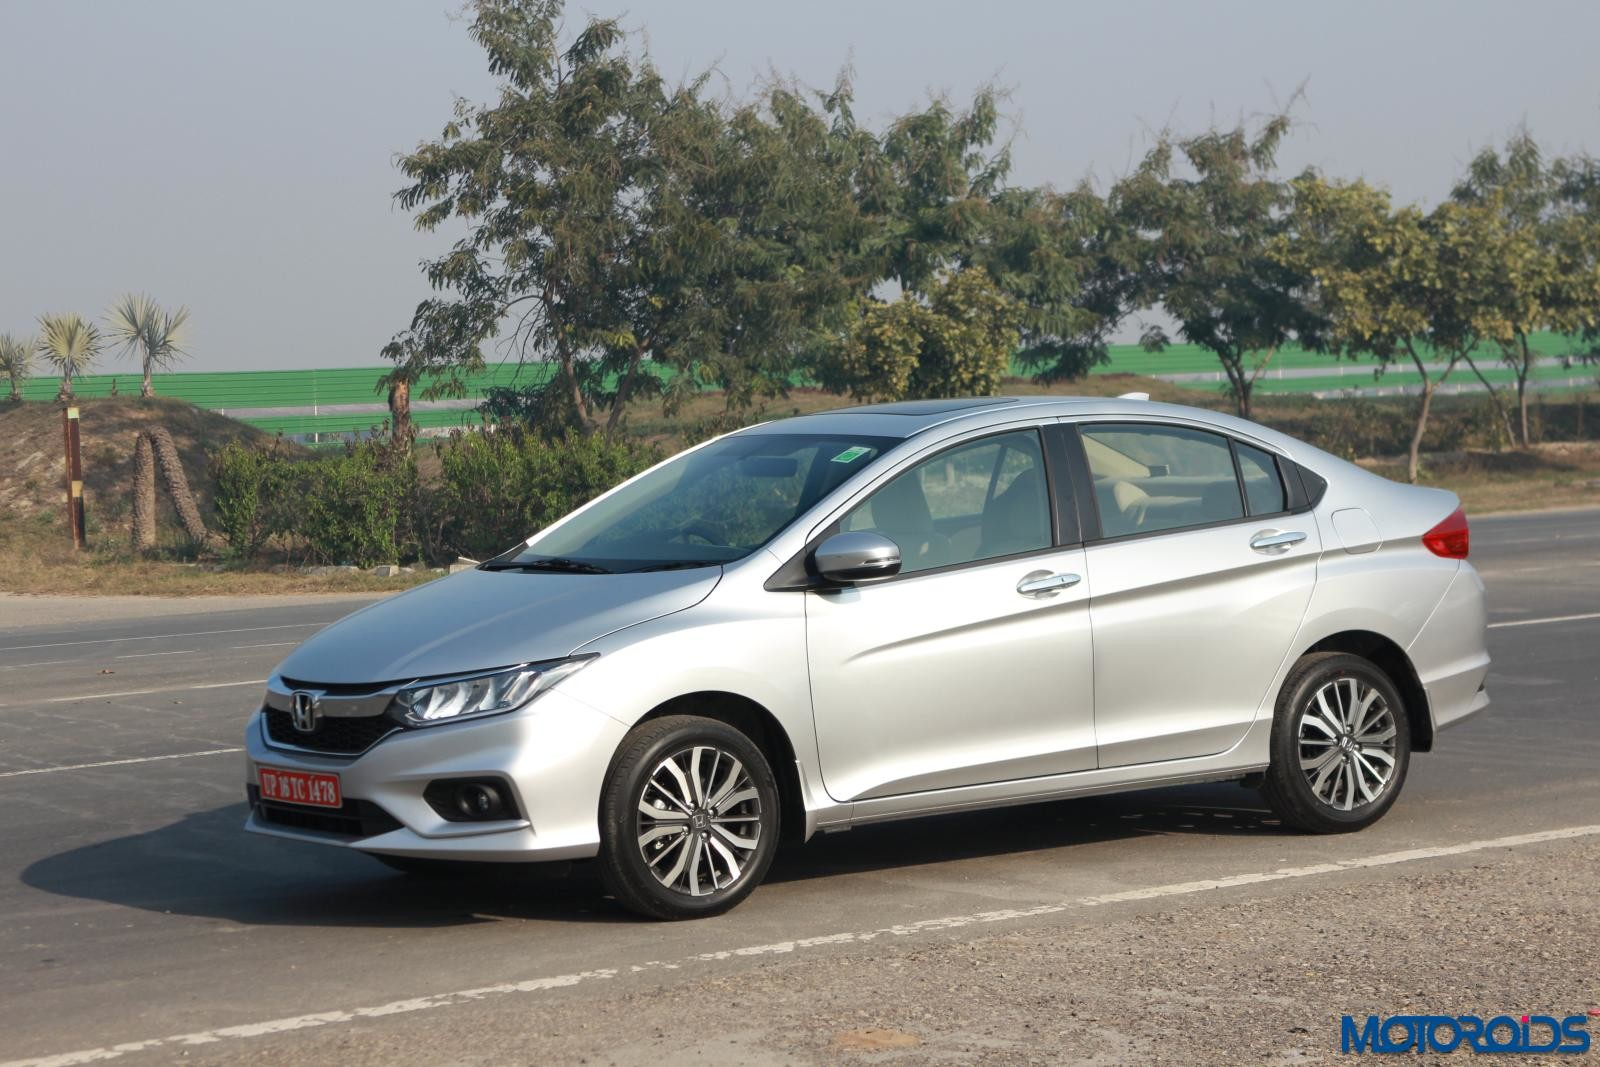 February 16, 2017-2017-Honda-City-Review-70.jpg